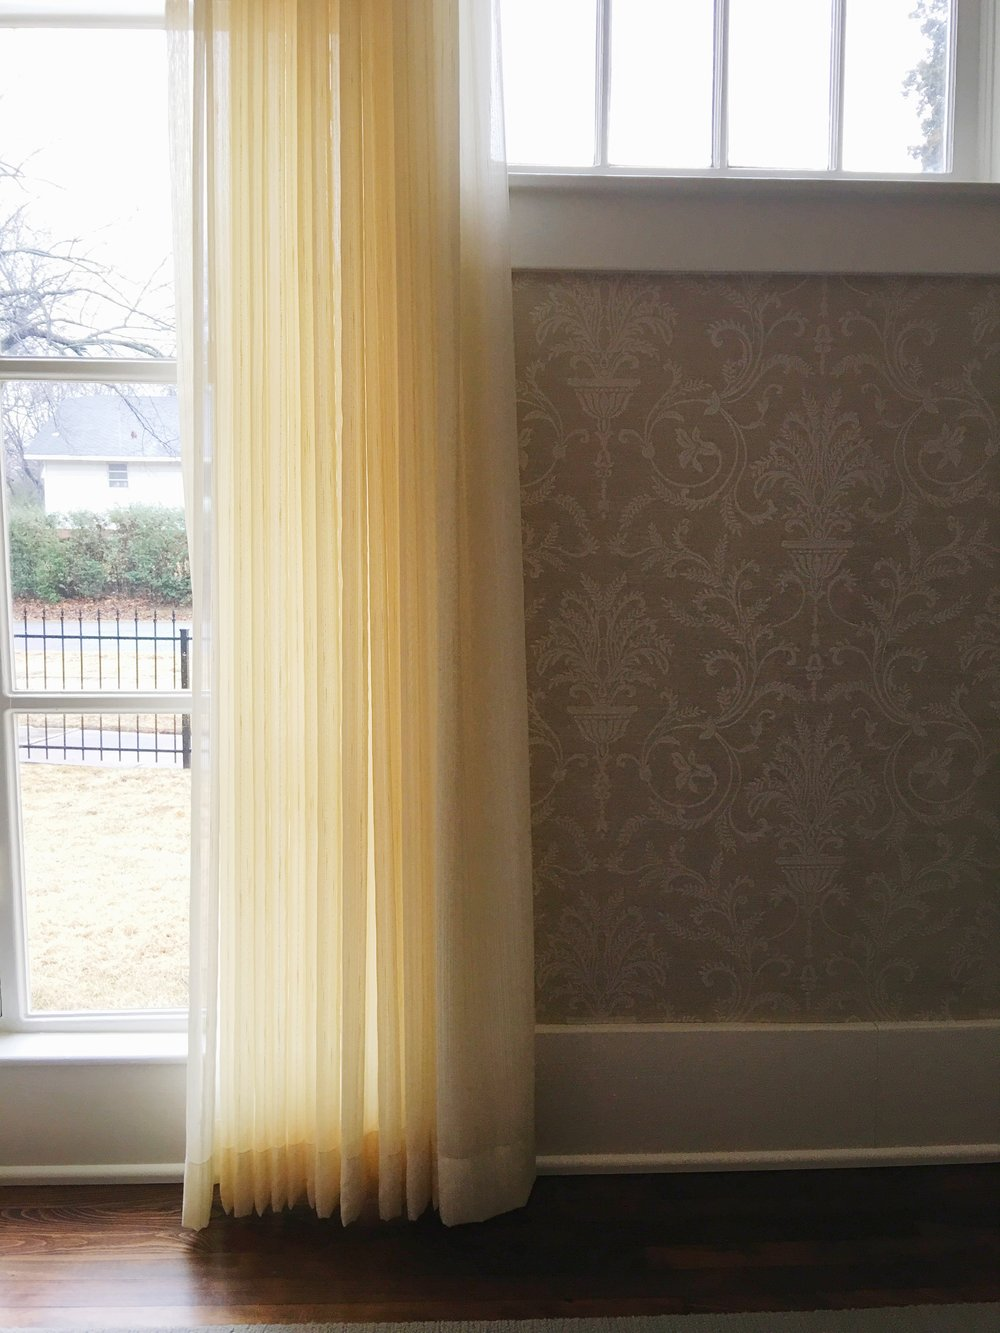 sharpe-house-wallpaper-window